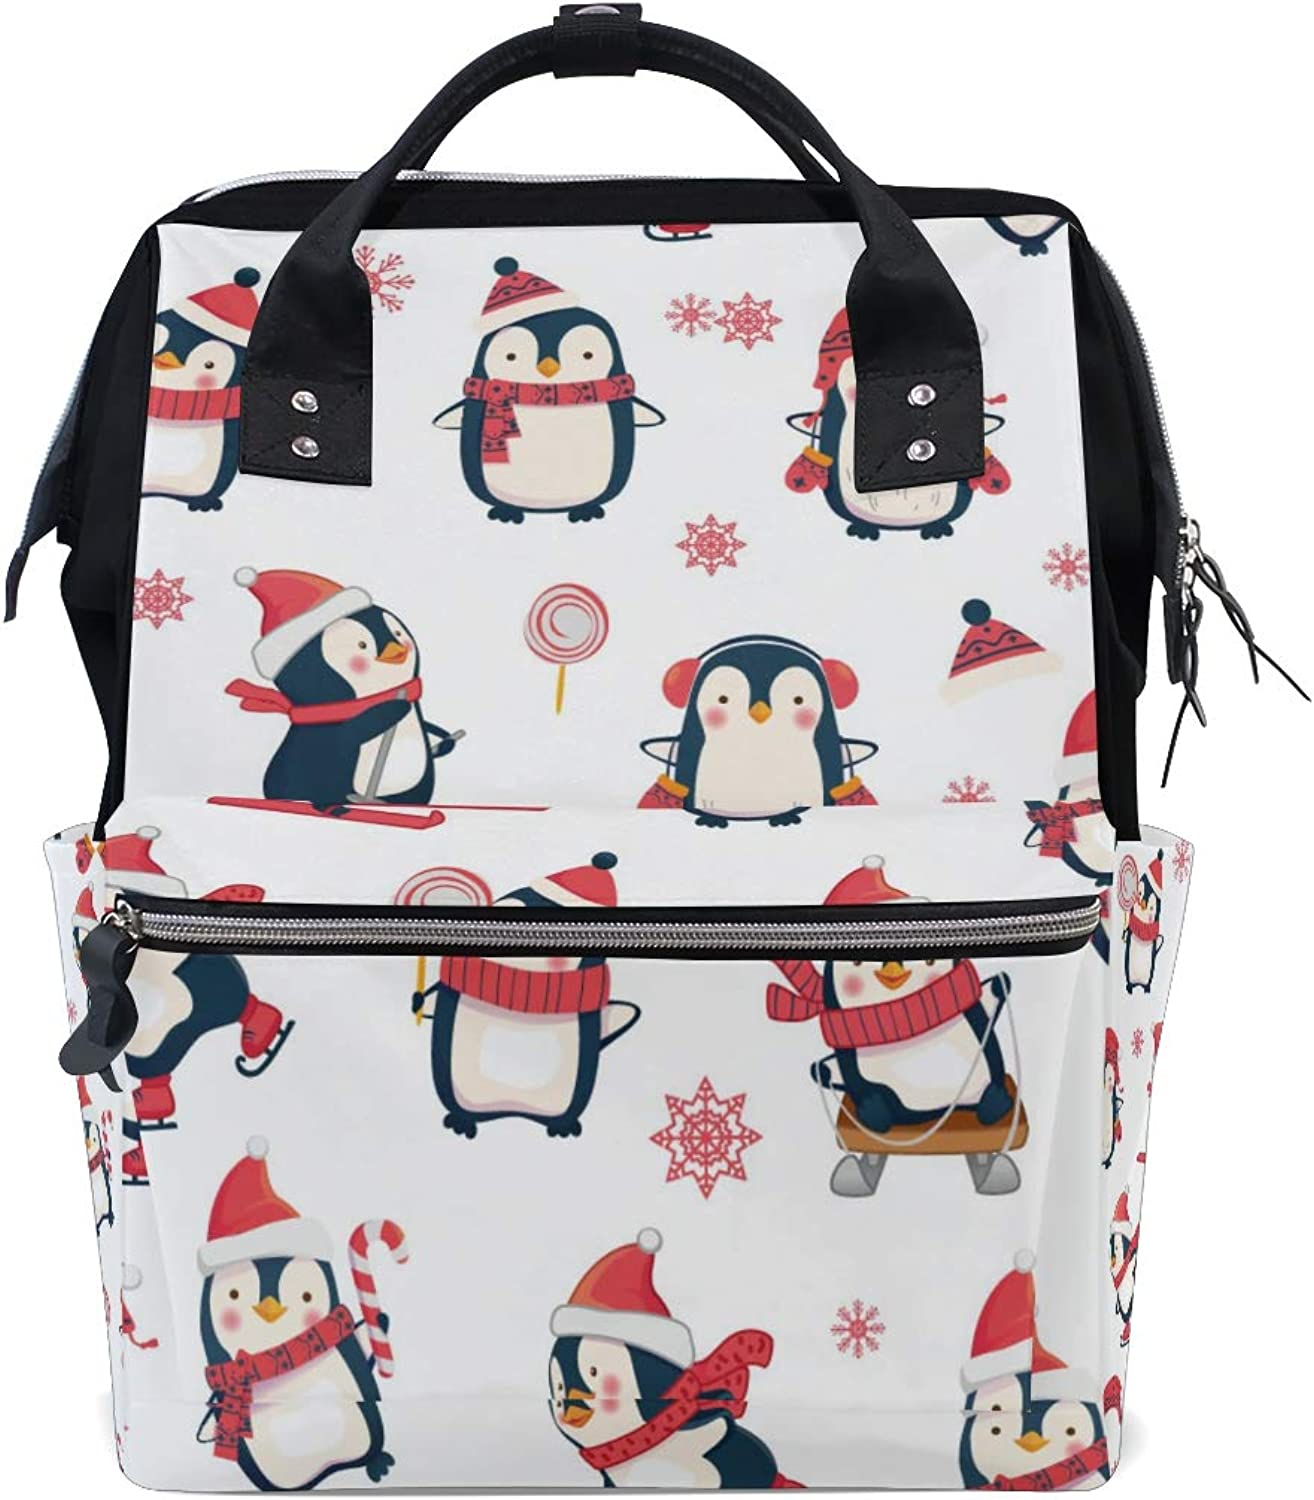 ColourLife Diaper bag Backpack Penguins Playing Tote Bag Casual Daypack Multifunctional Nappy Bags